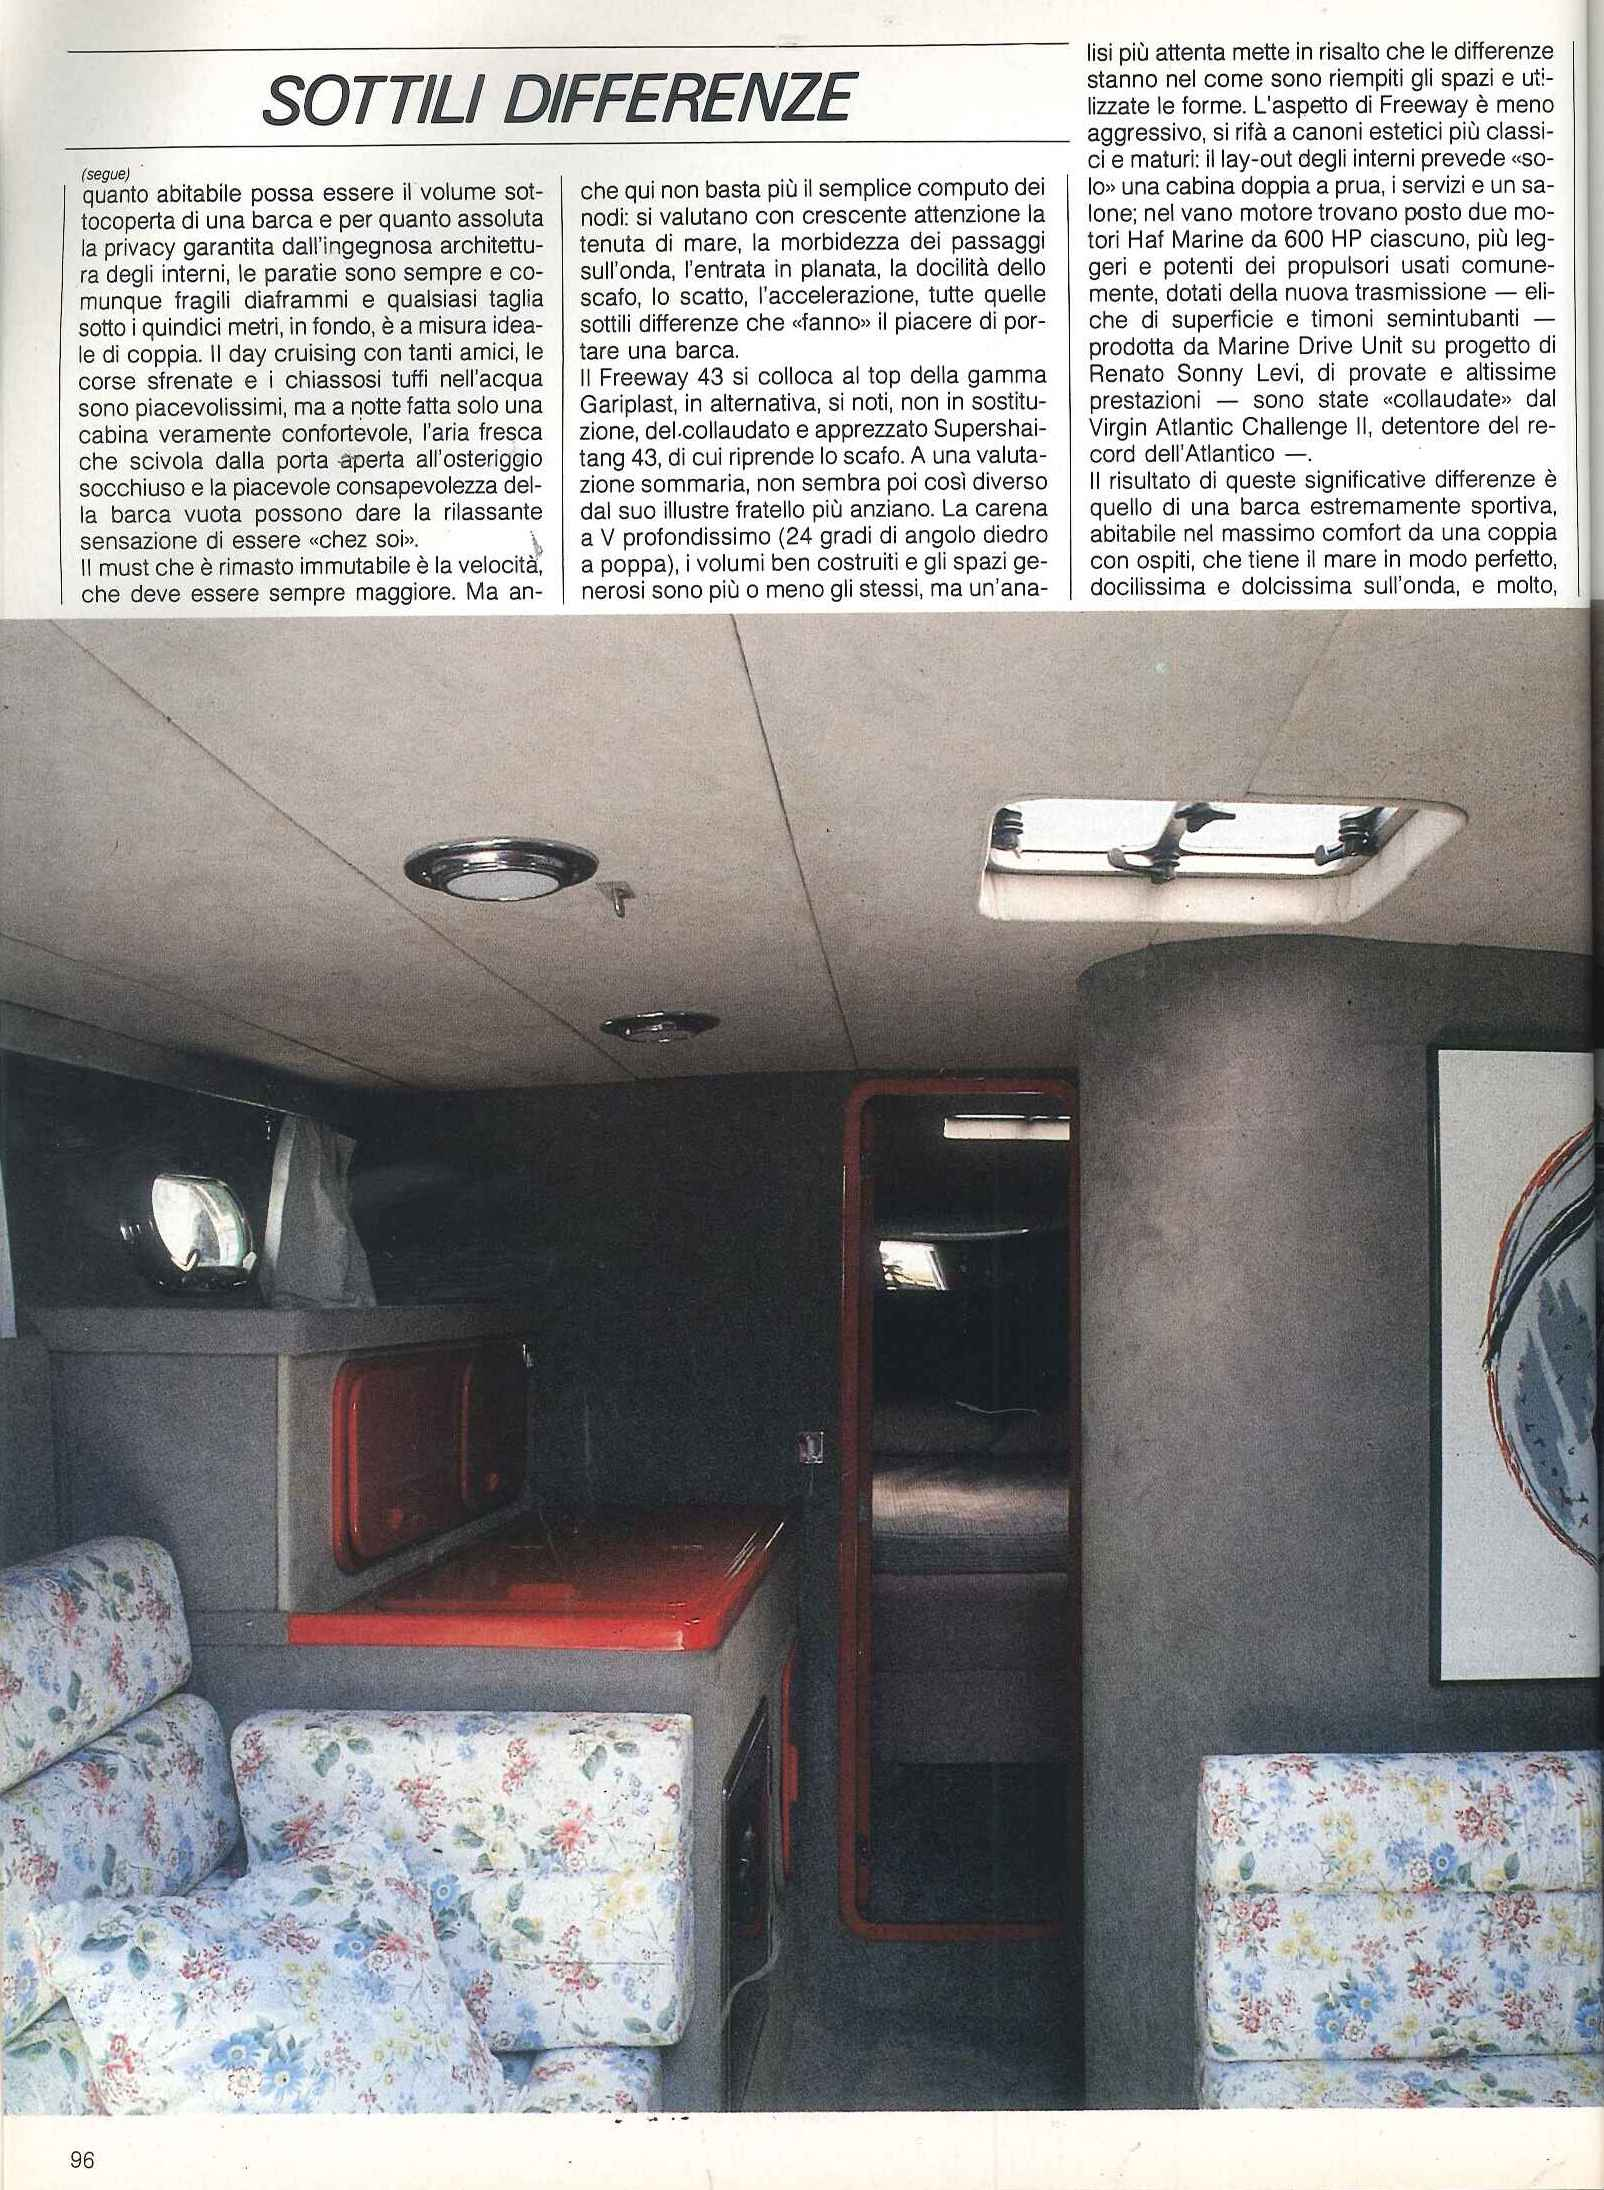 1987 07 PRESS GARIPLAST FREEWAY 43 UOMO MARE N°111(03).jpg